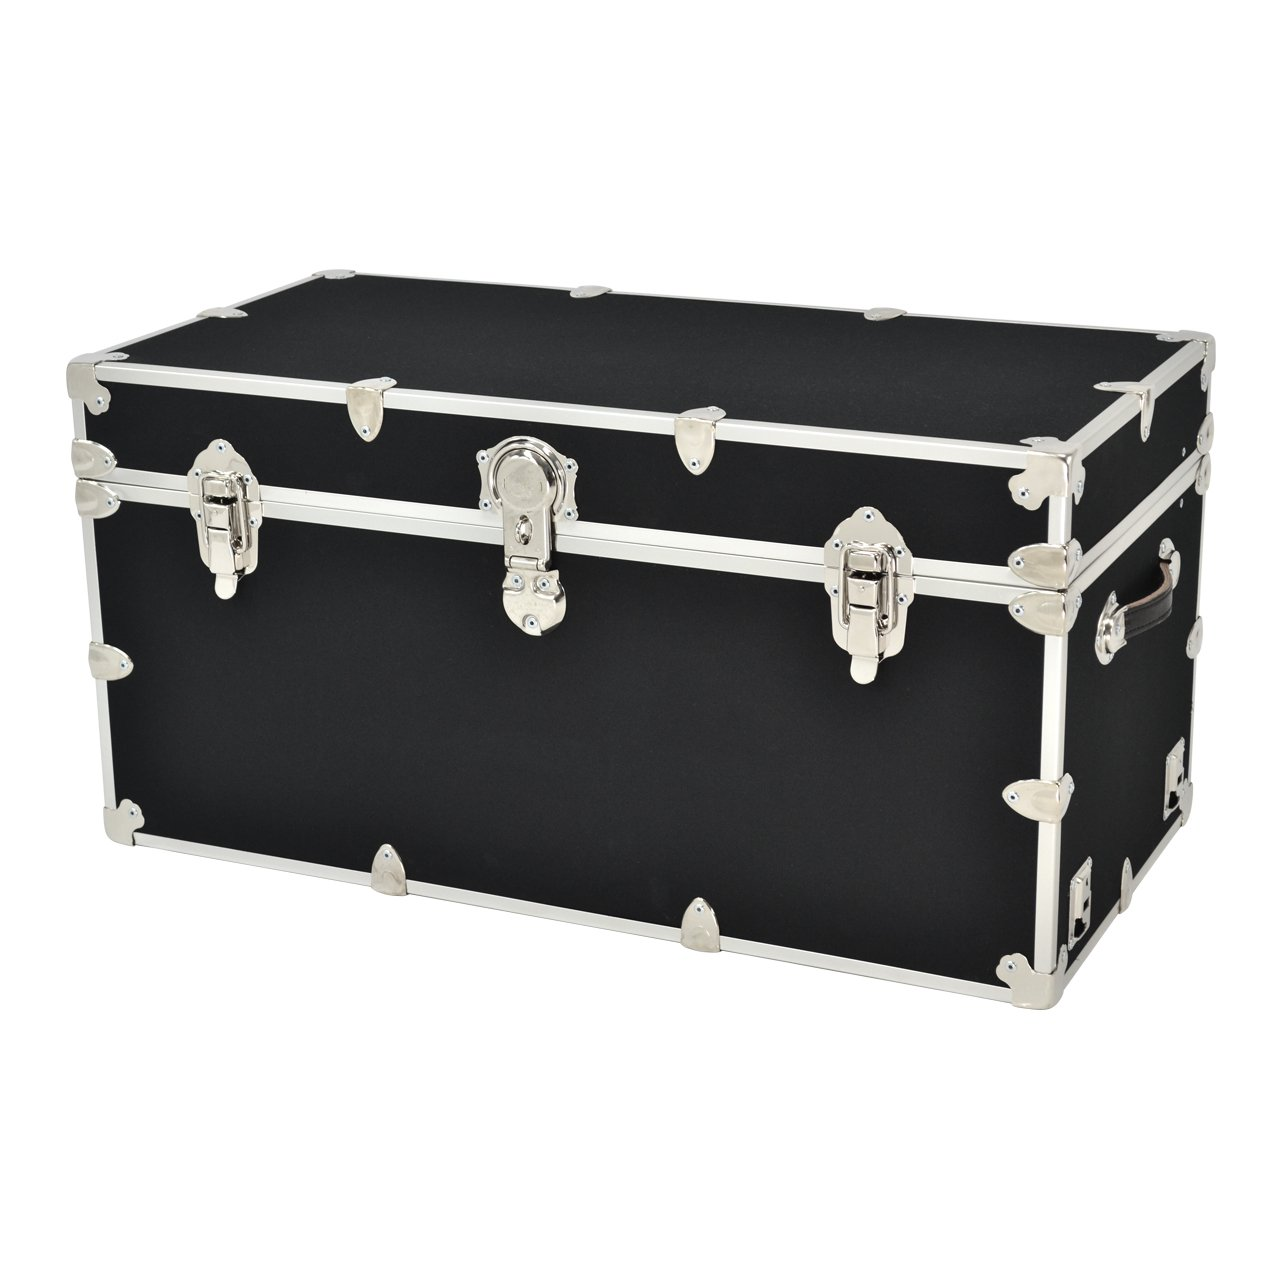 Rhino Trunk and Case Armor Trunk, XX-Large, Black by Rhino Trunk and Case